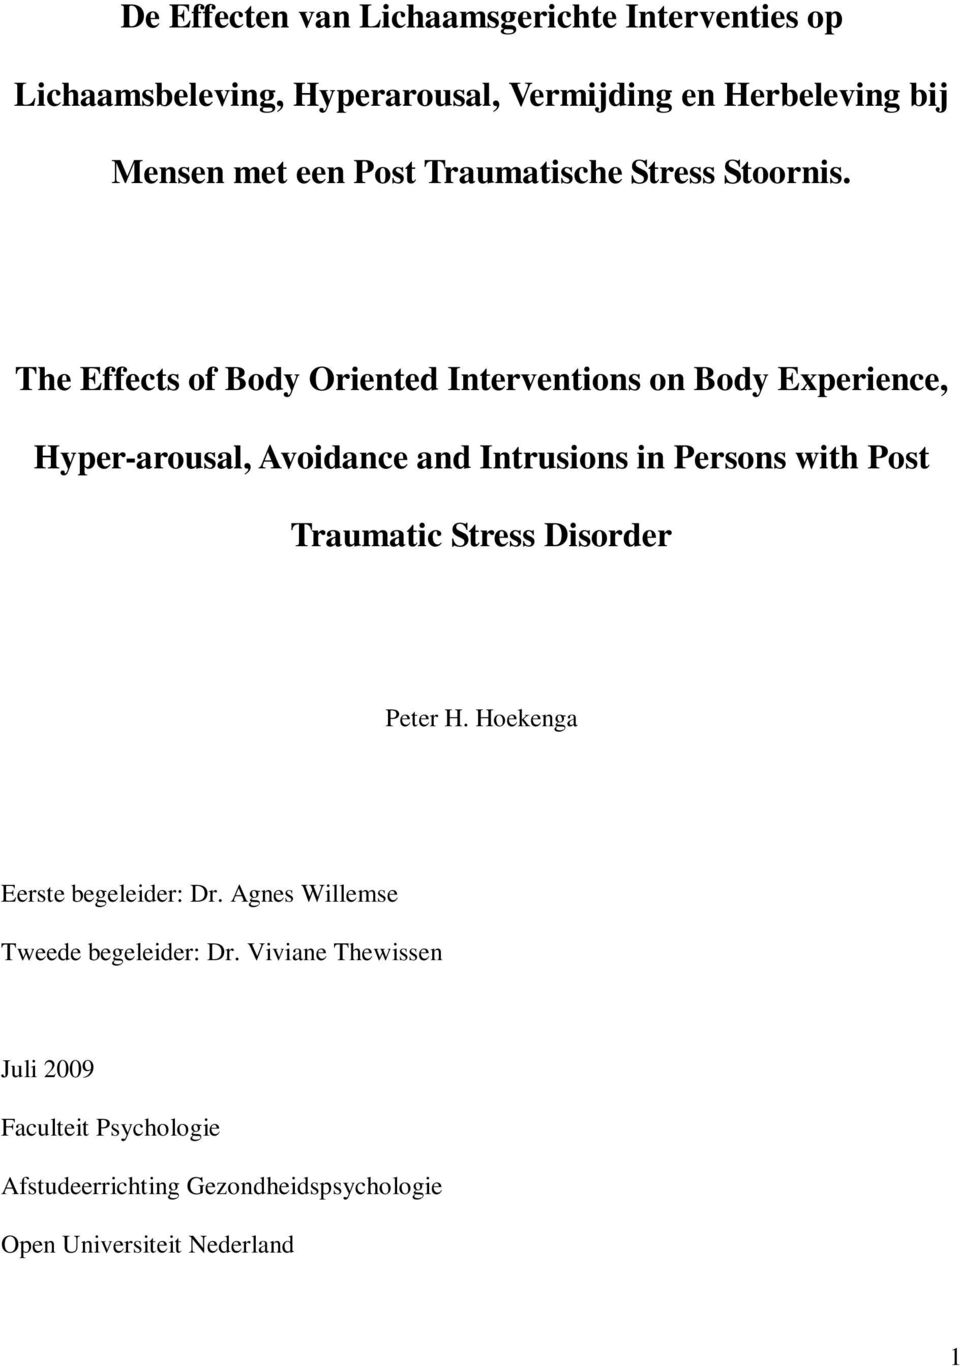 The Effects of Body Oriented Interventions on Body Experience, Hyper-arousal, Avoidance and Intrusions in Persons with